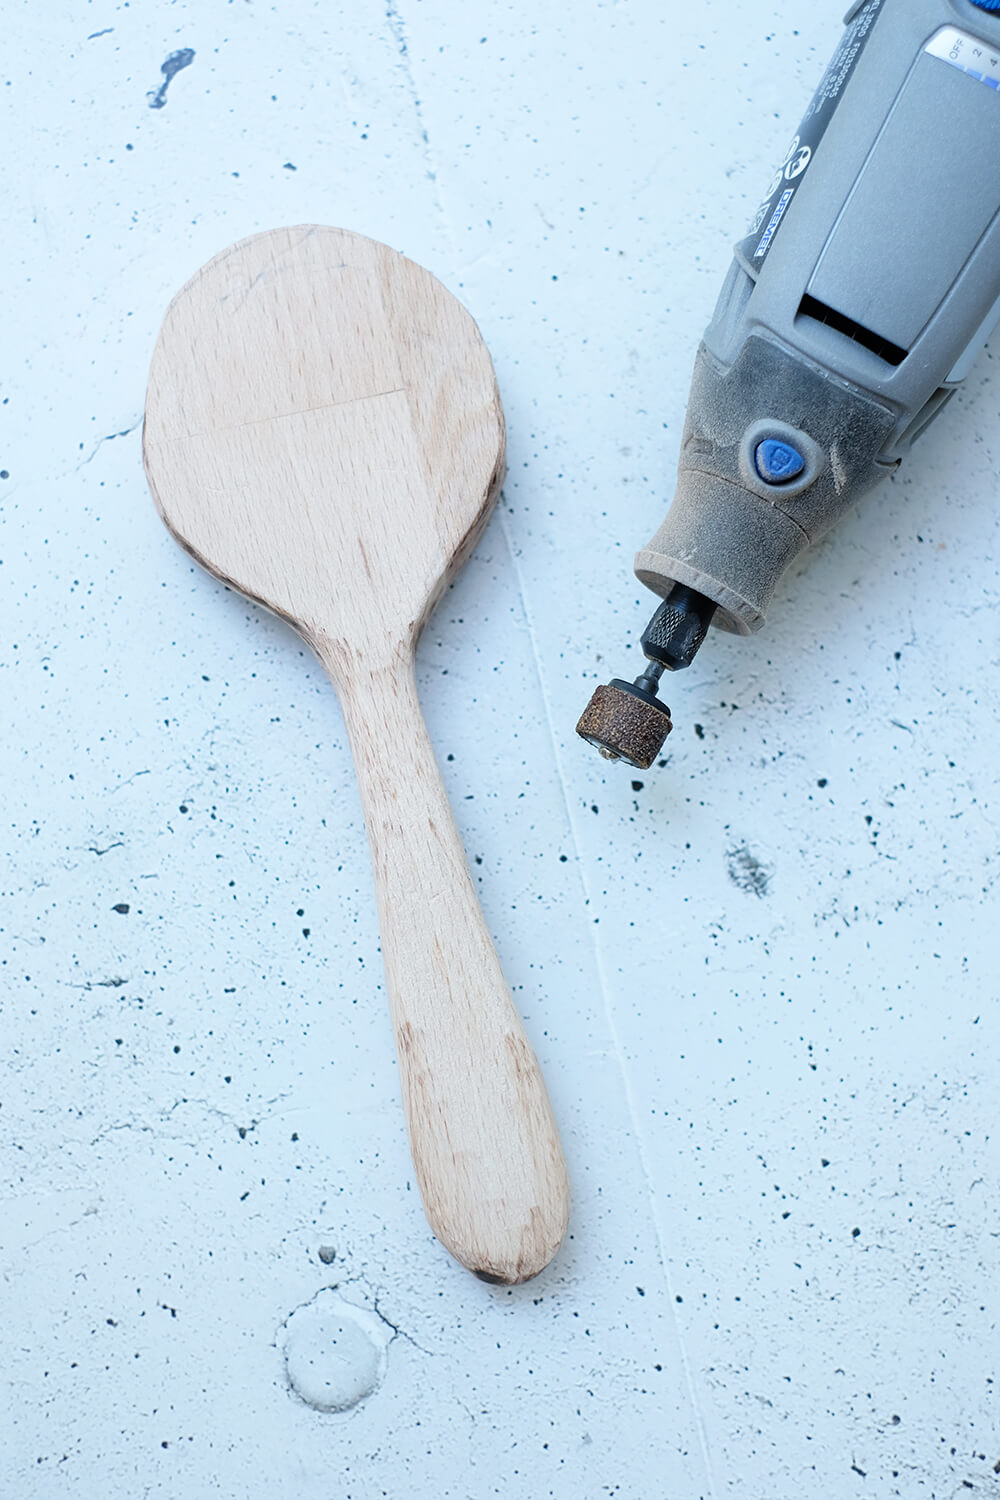 DIY Challnge September 2020 Holz - Woe man einen löffel schnitzt - Gingered Things